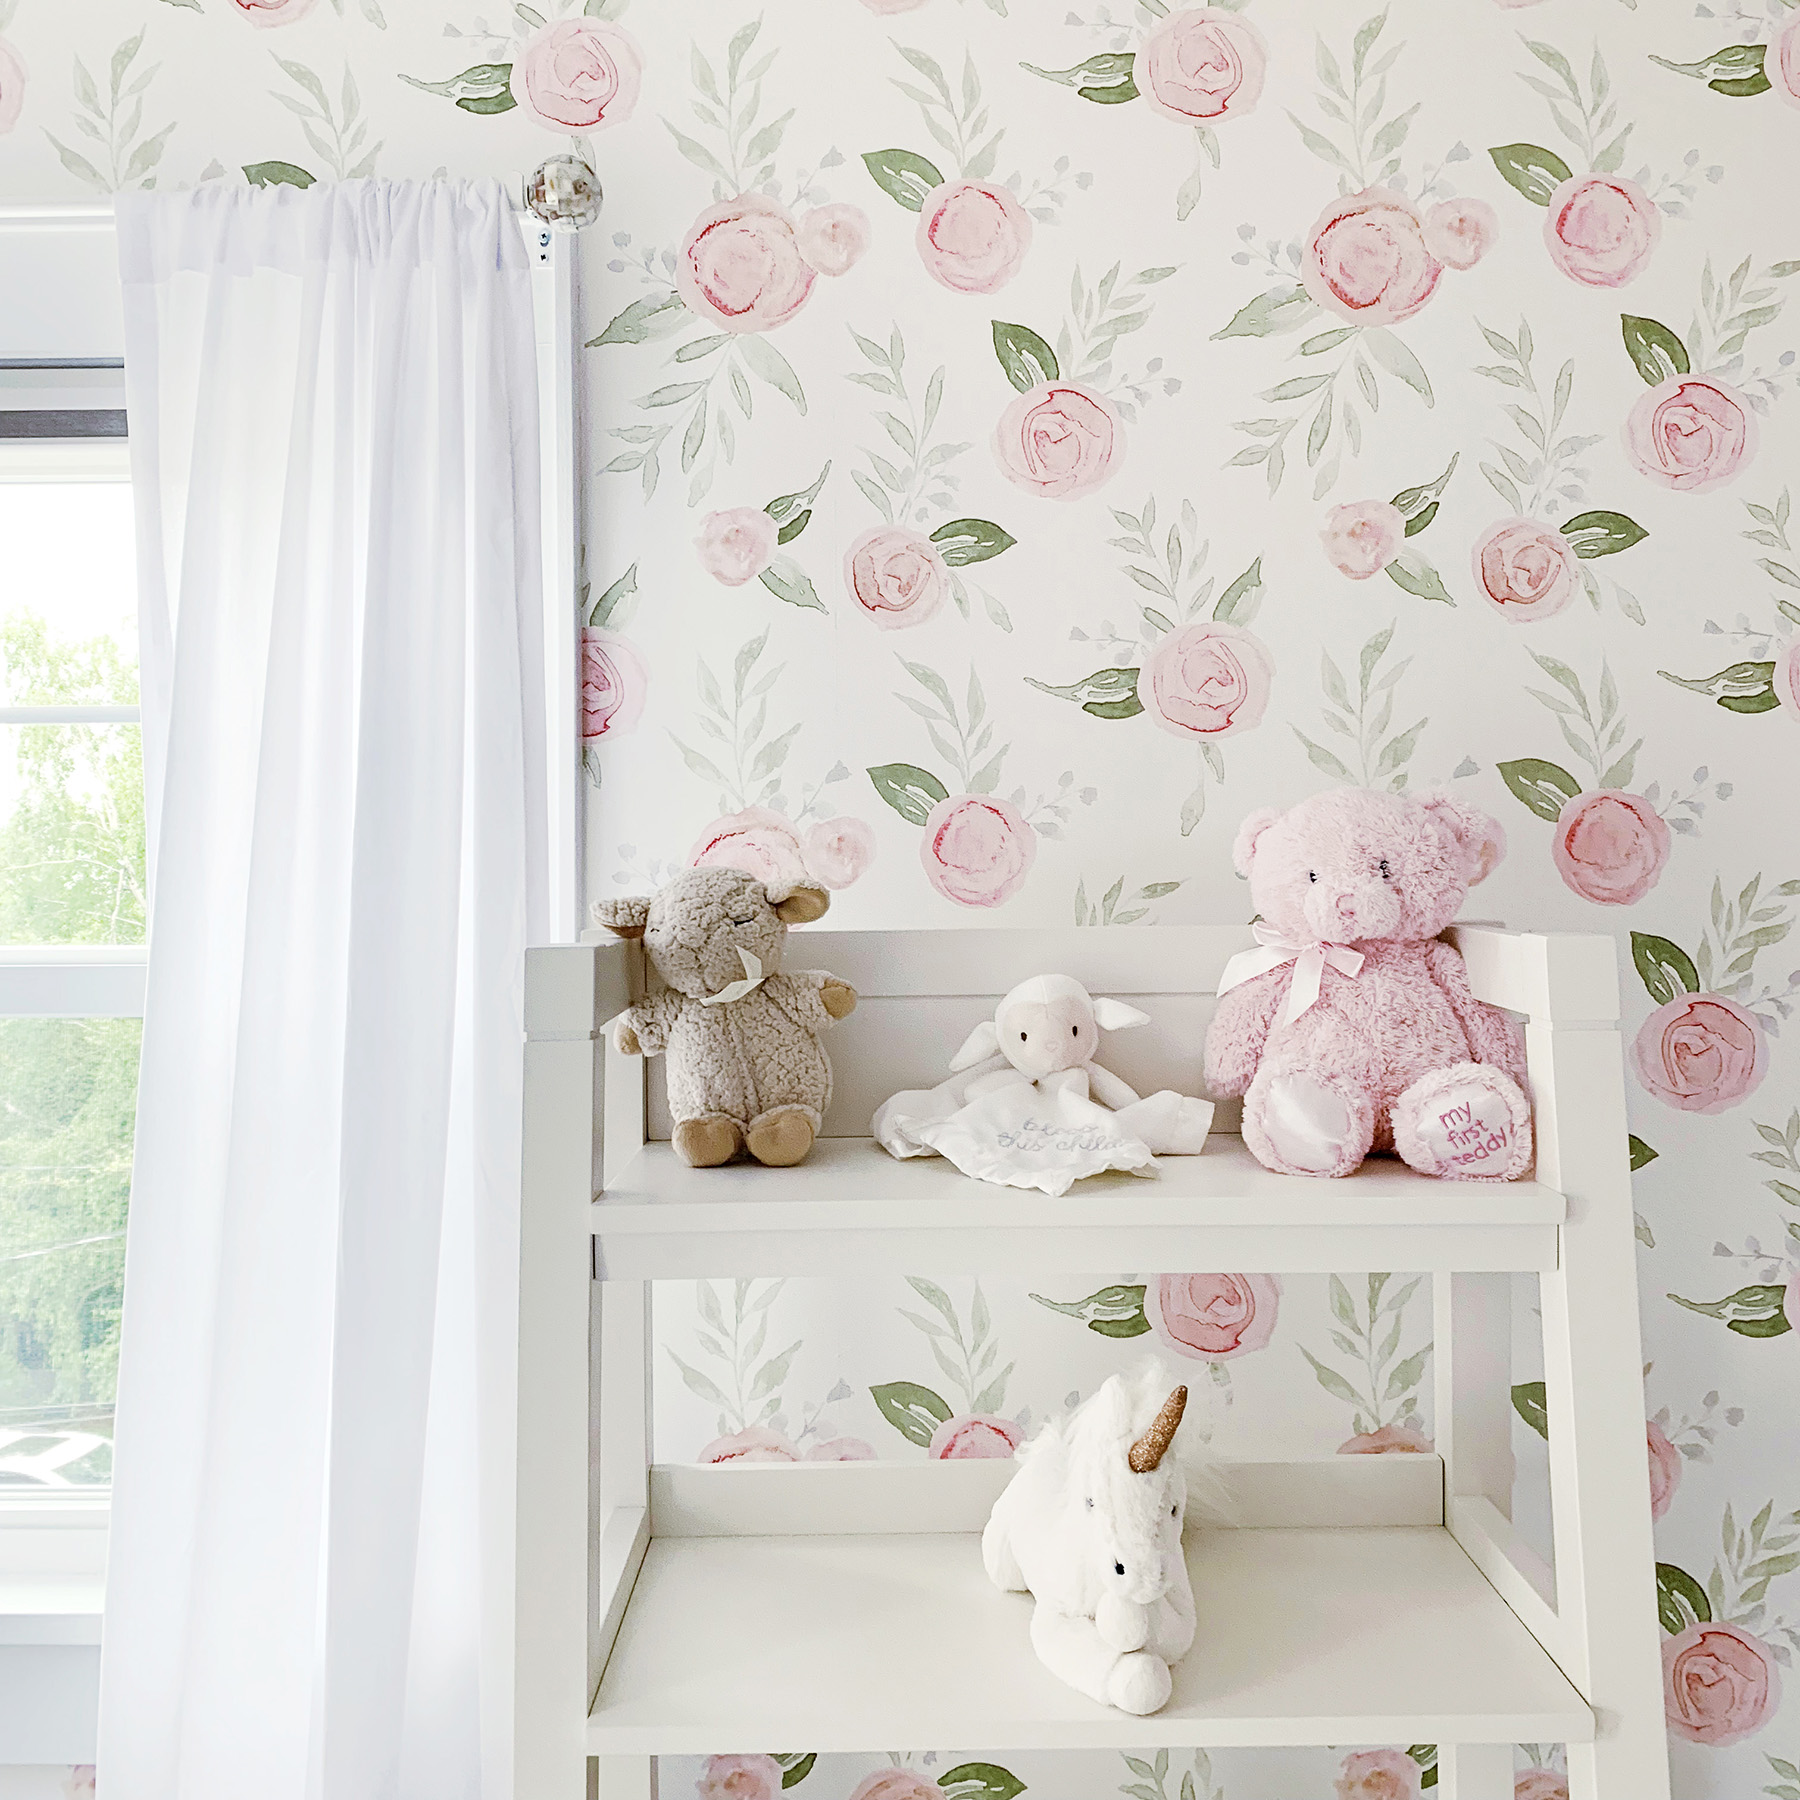 Copy of Little Girl's Bedroom